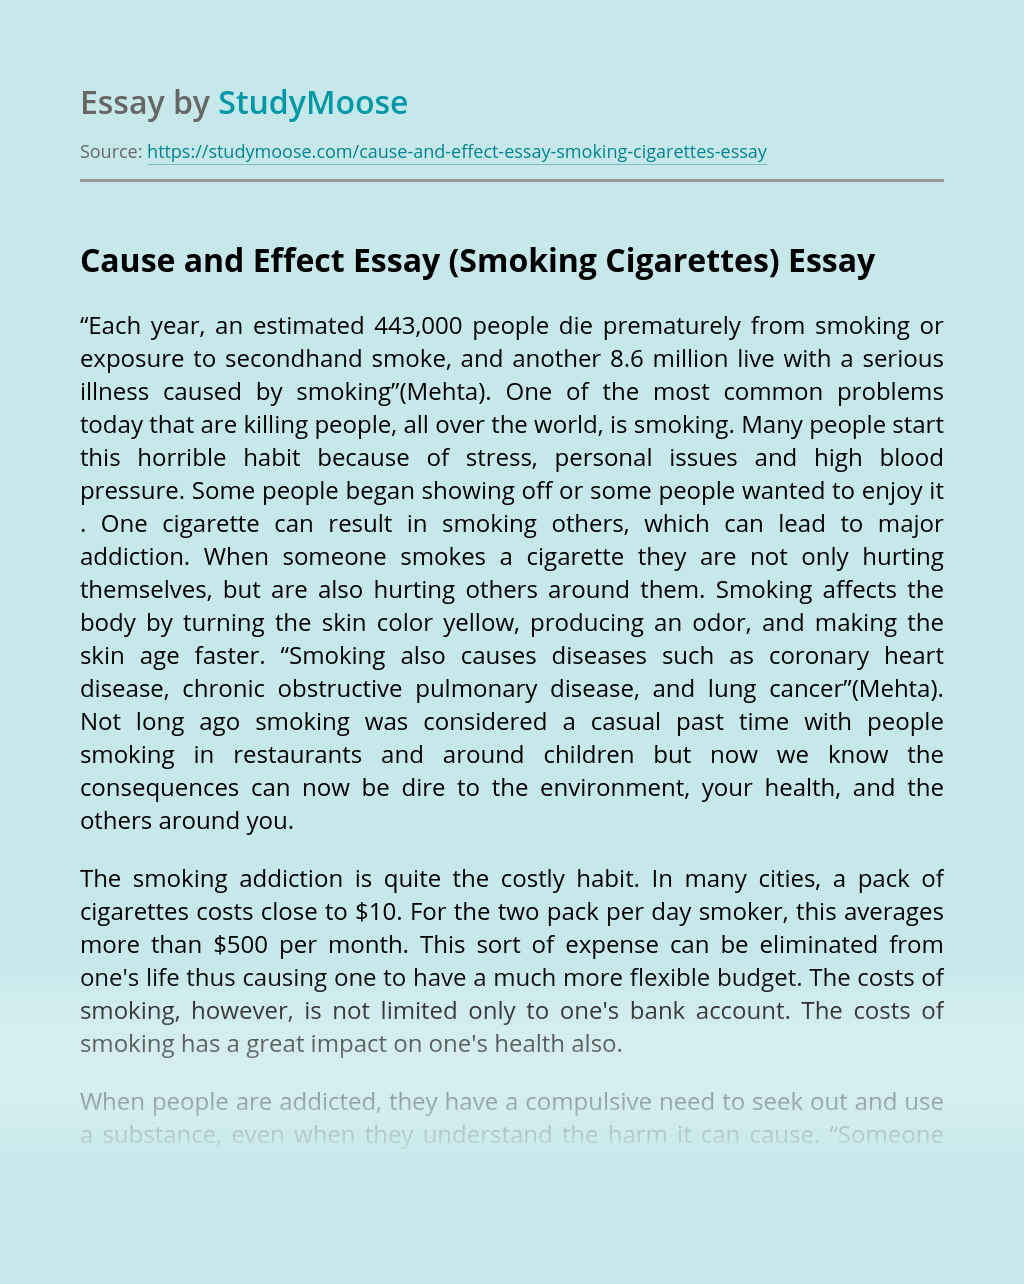 Cause and Effect Essay (Smoking Cigarettes)